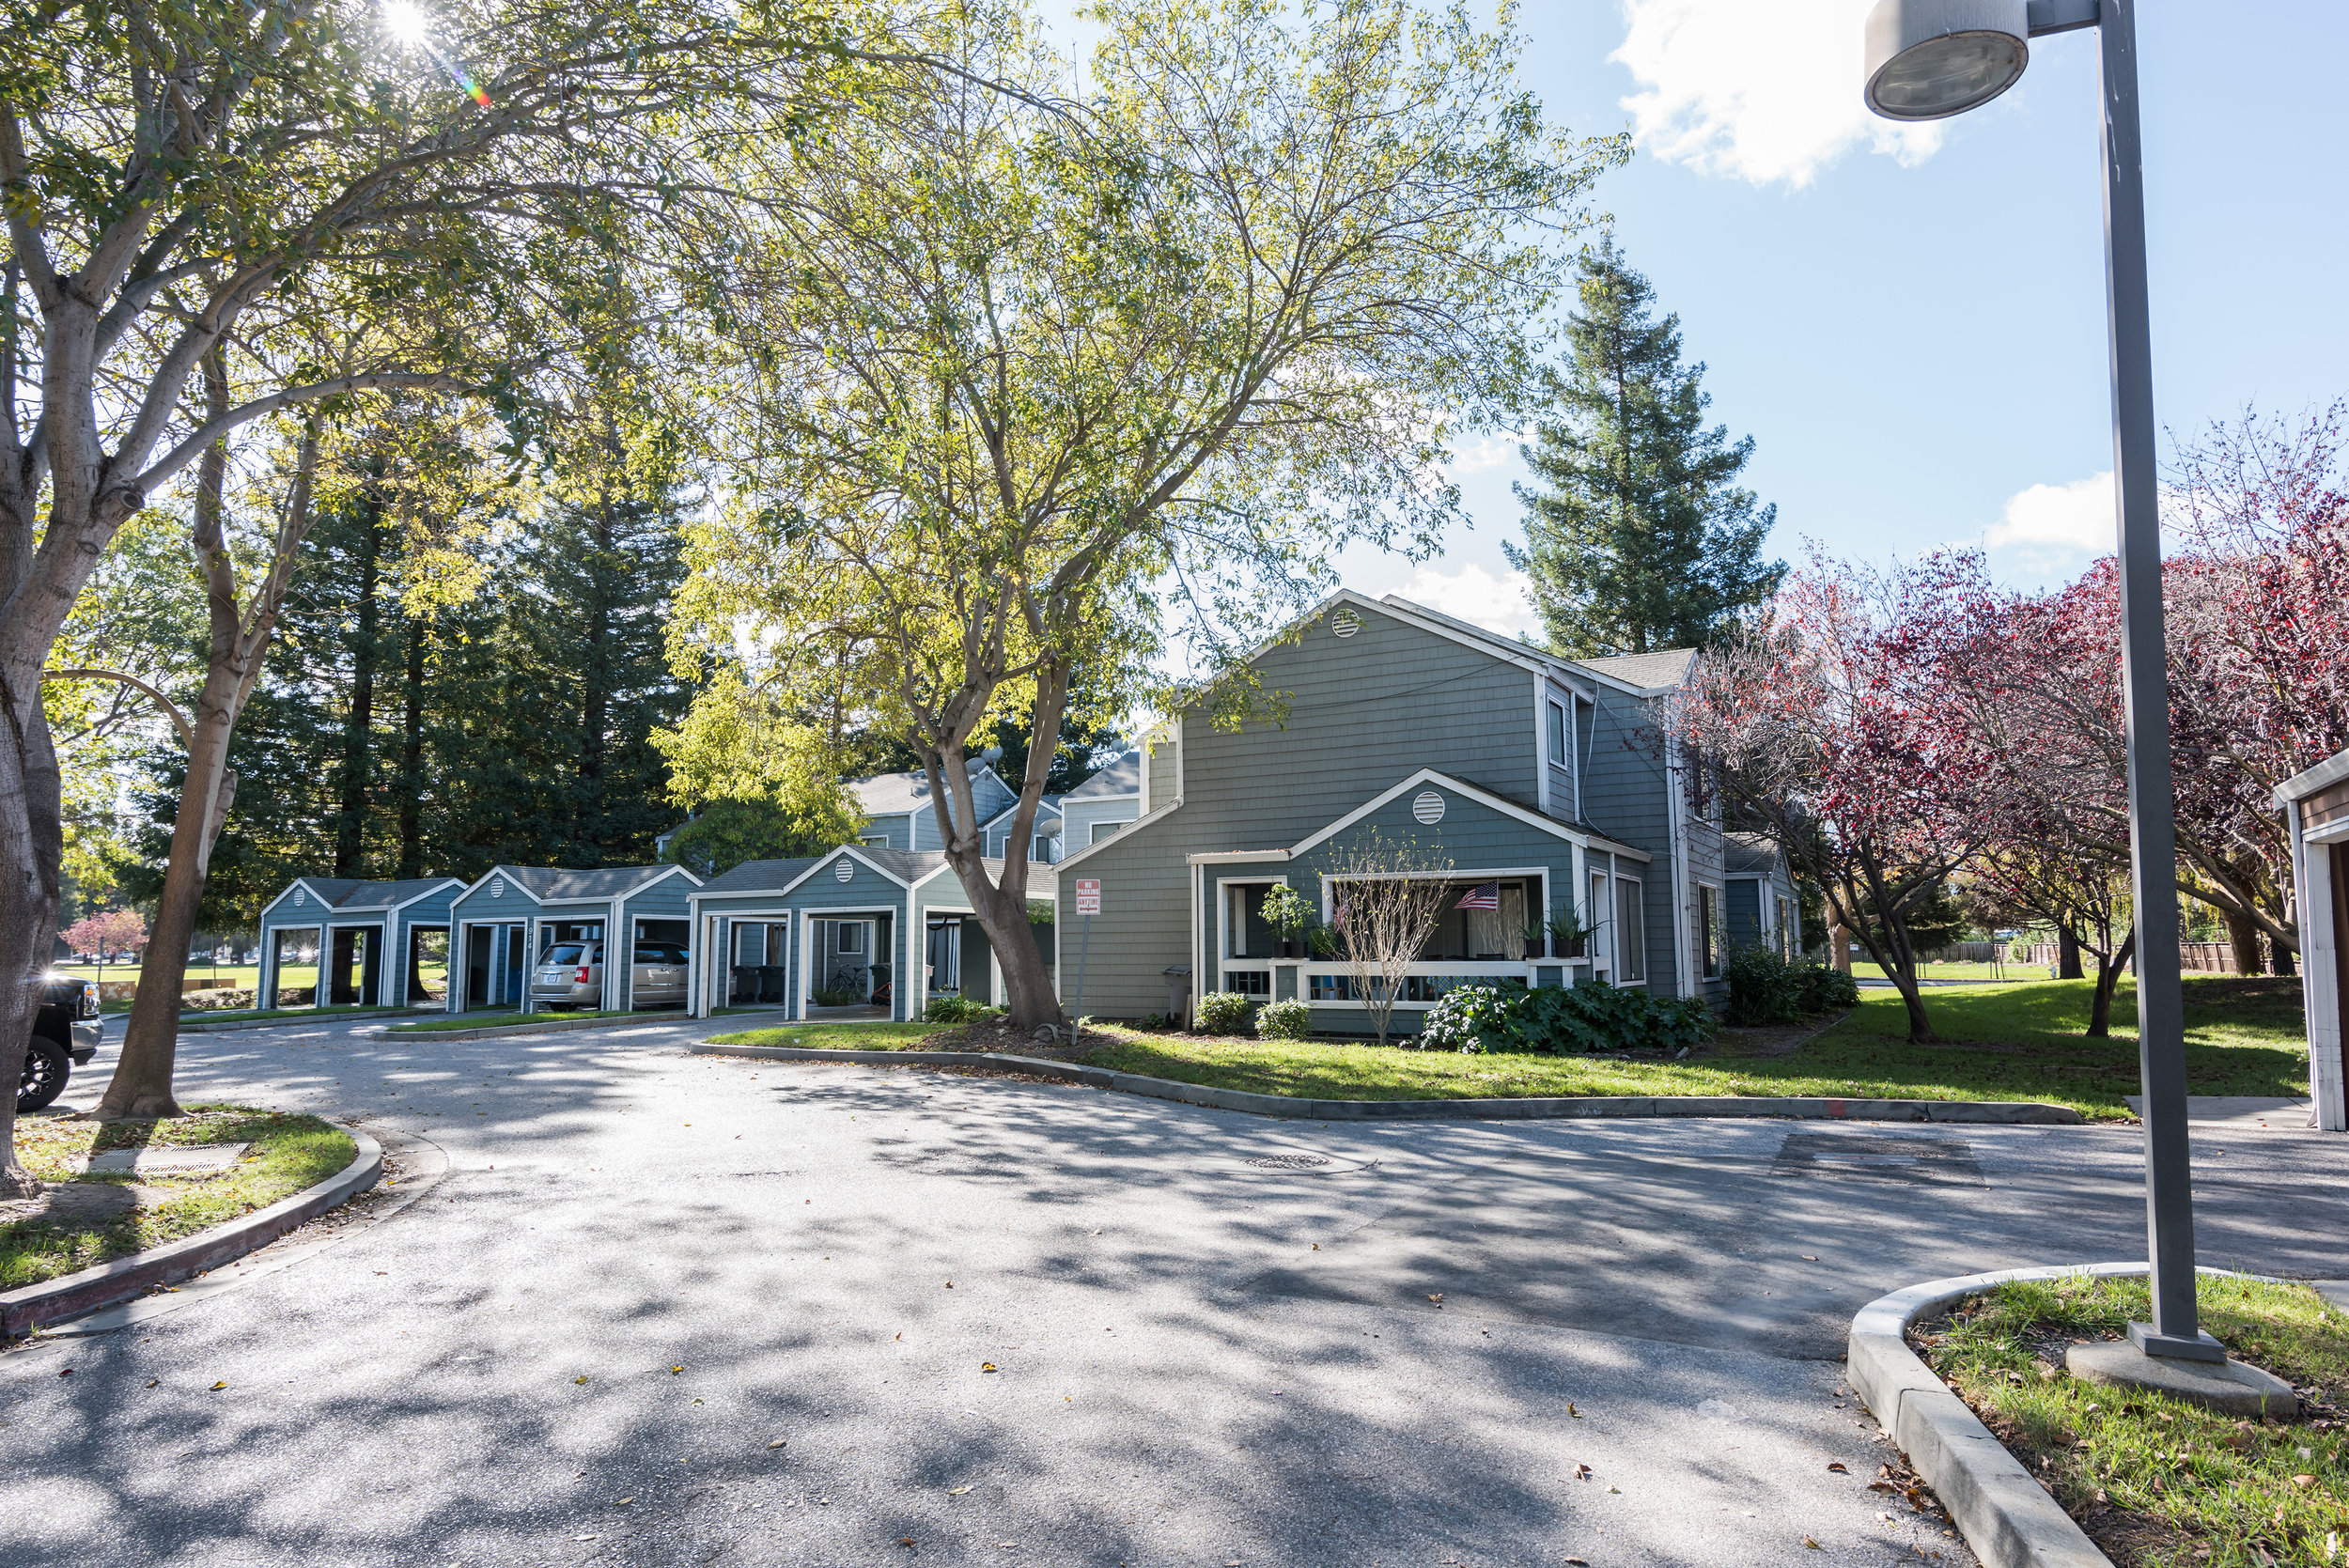 Rental Townhomes and Covered Parking